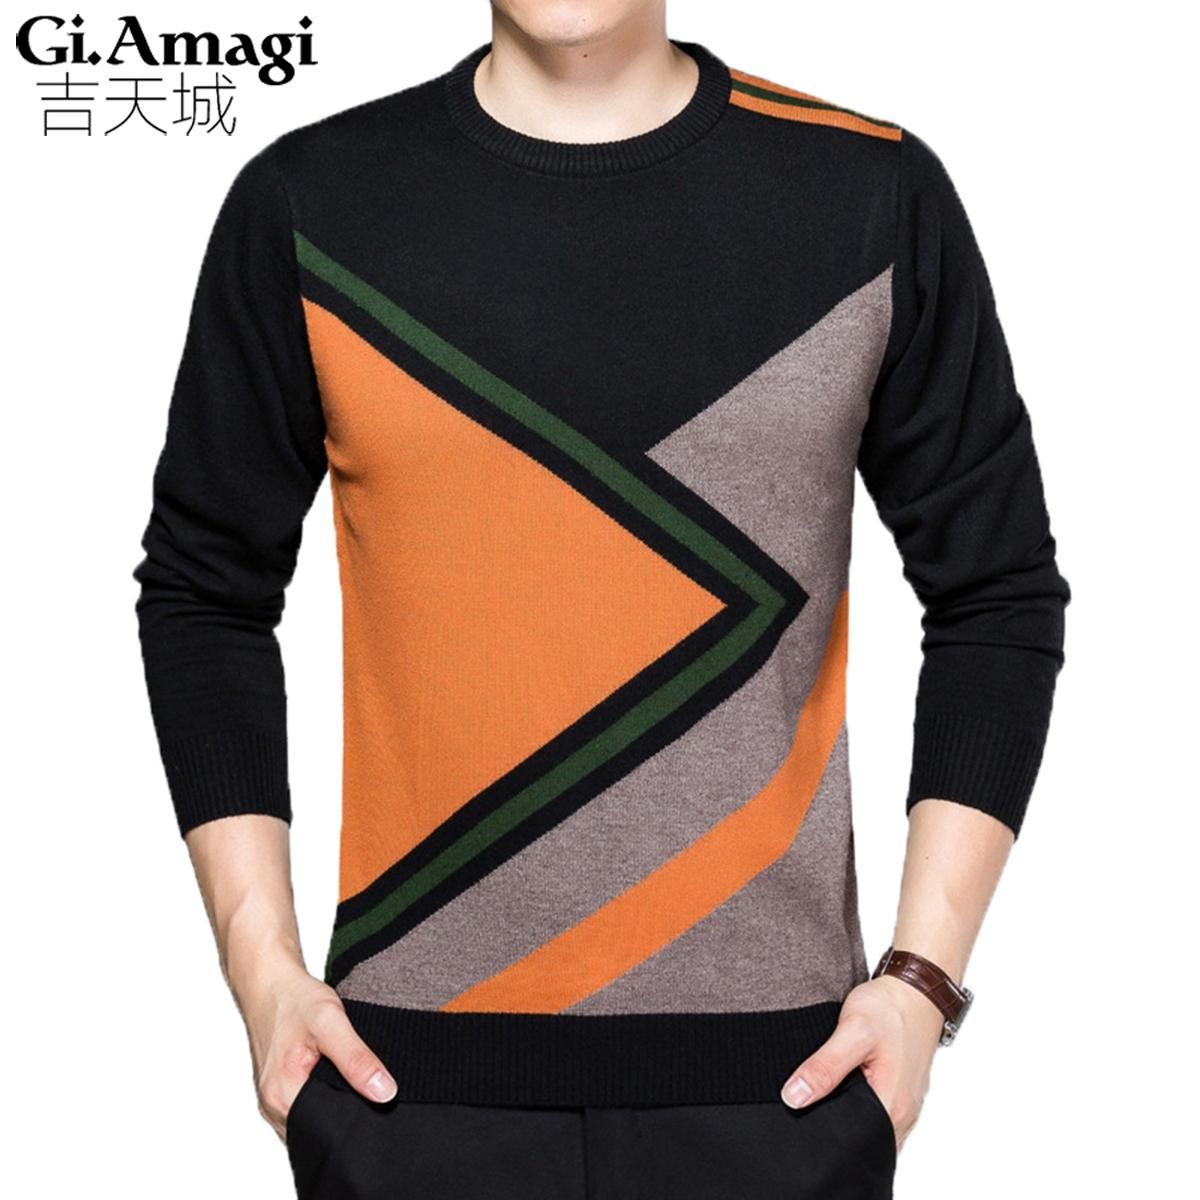 Strickpullover Men 2017 new autumn winter causal knitted striped sweater men  slim fit wool mens pullover high quality 66c0e6413f